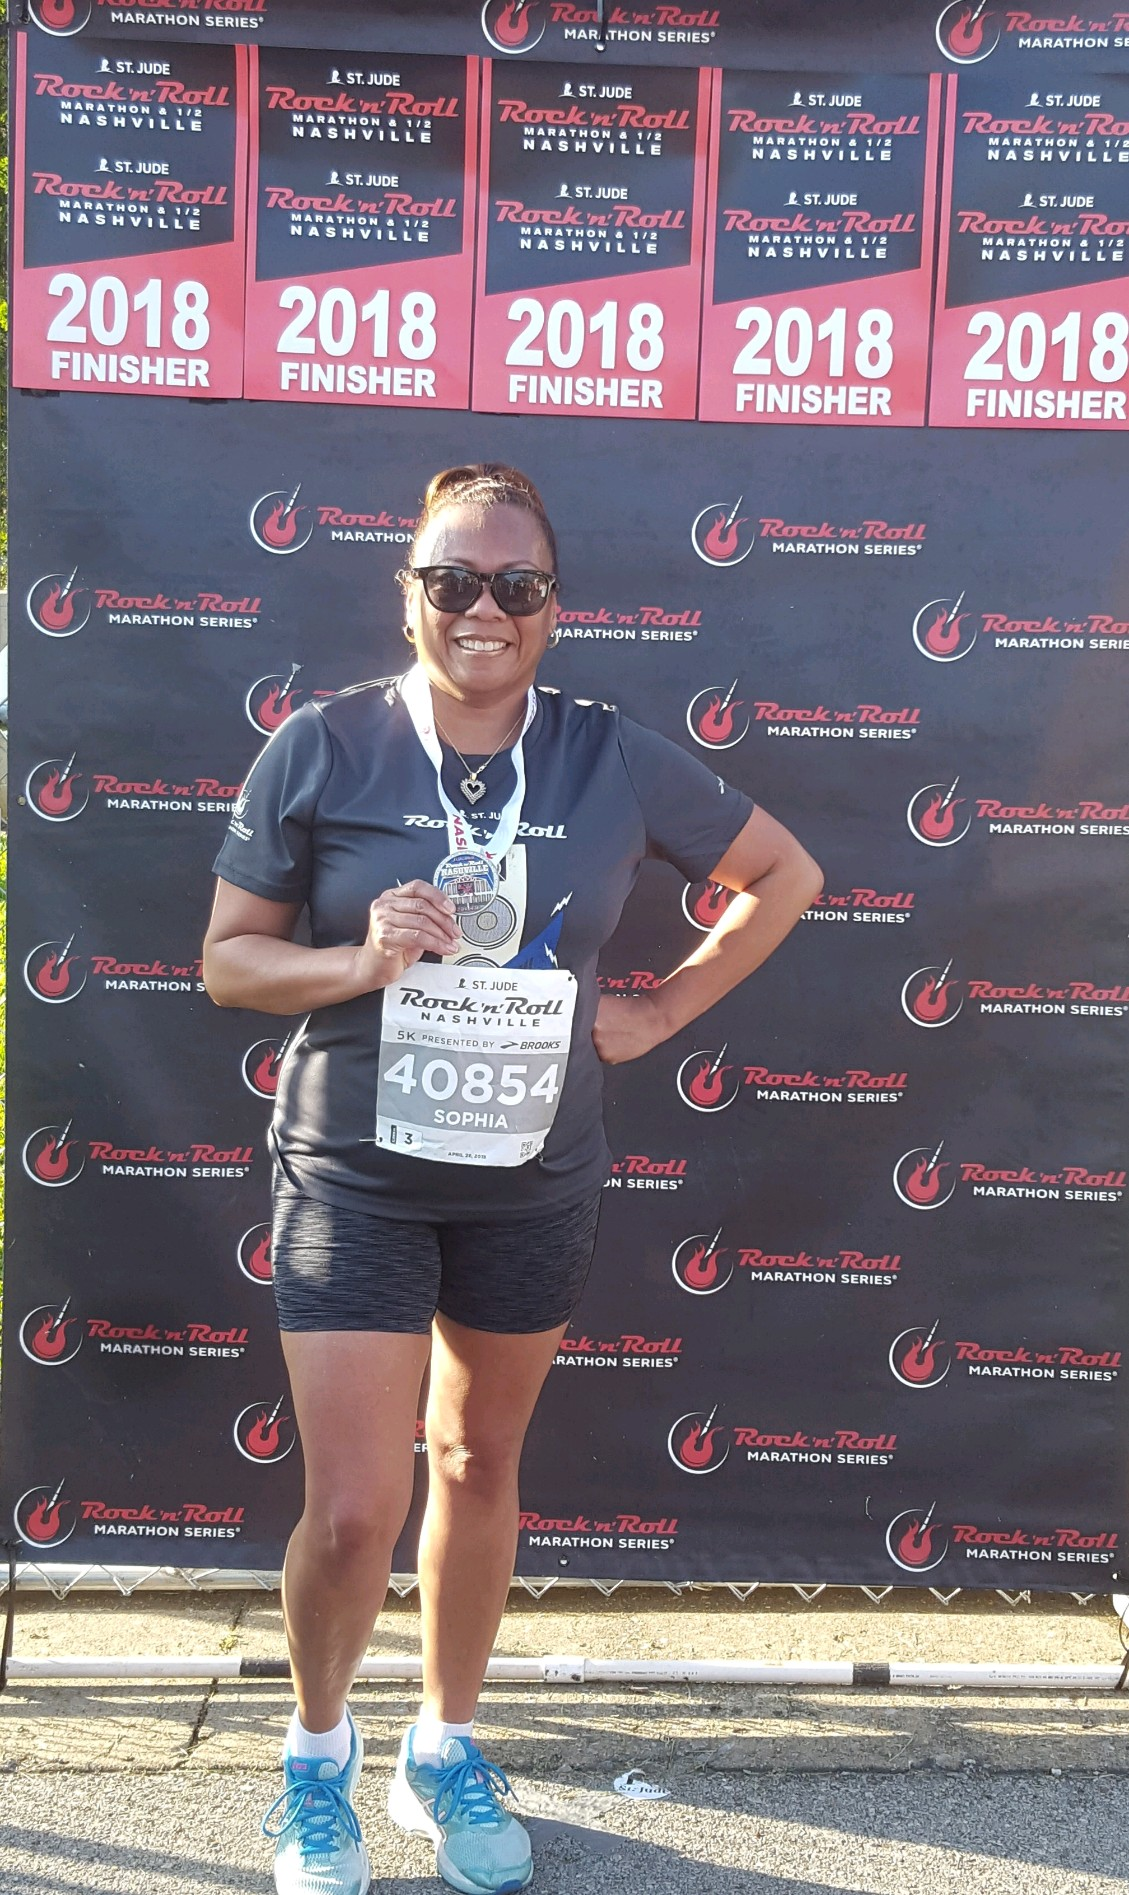 Sophia Young-McAdoo from the Department of Human Services participated in the Rock n Roll Marathon. Congrats!